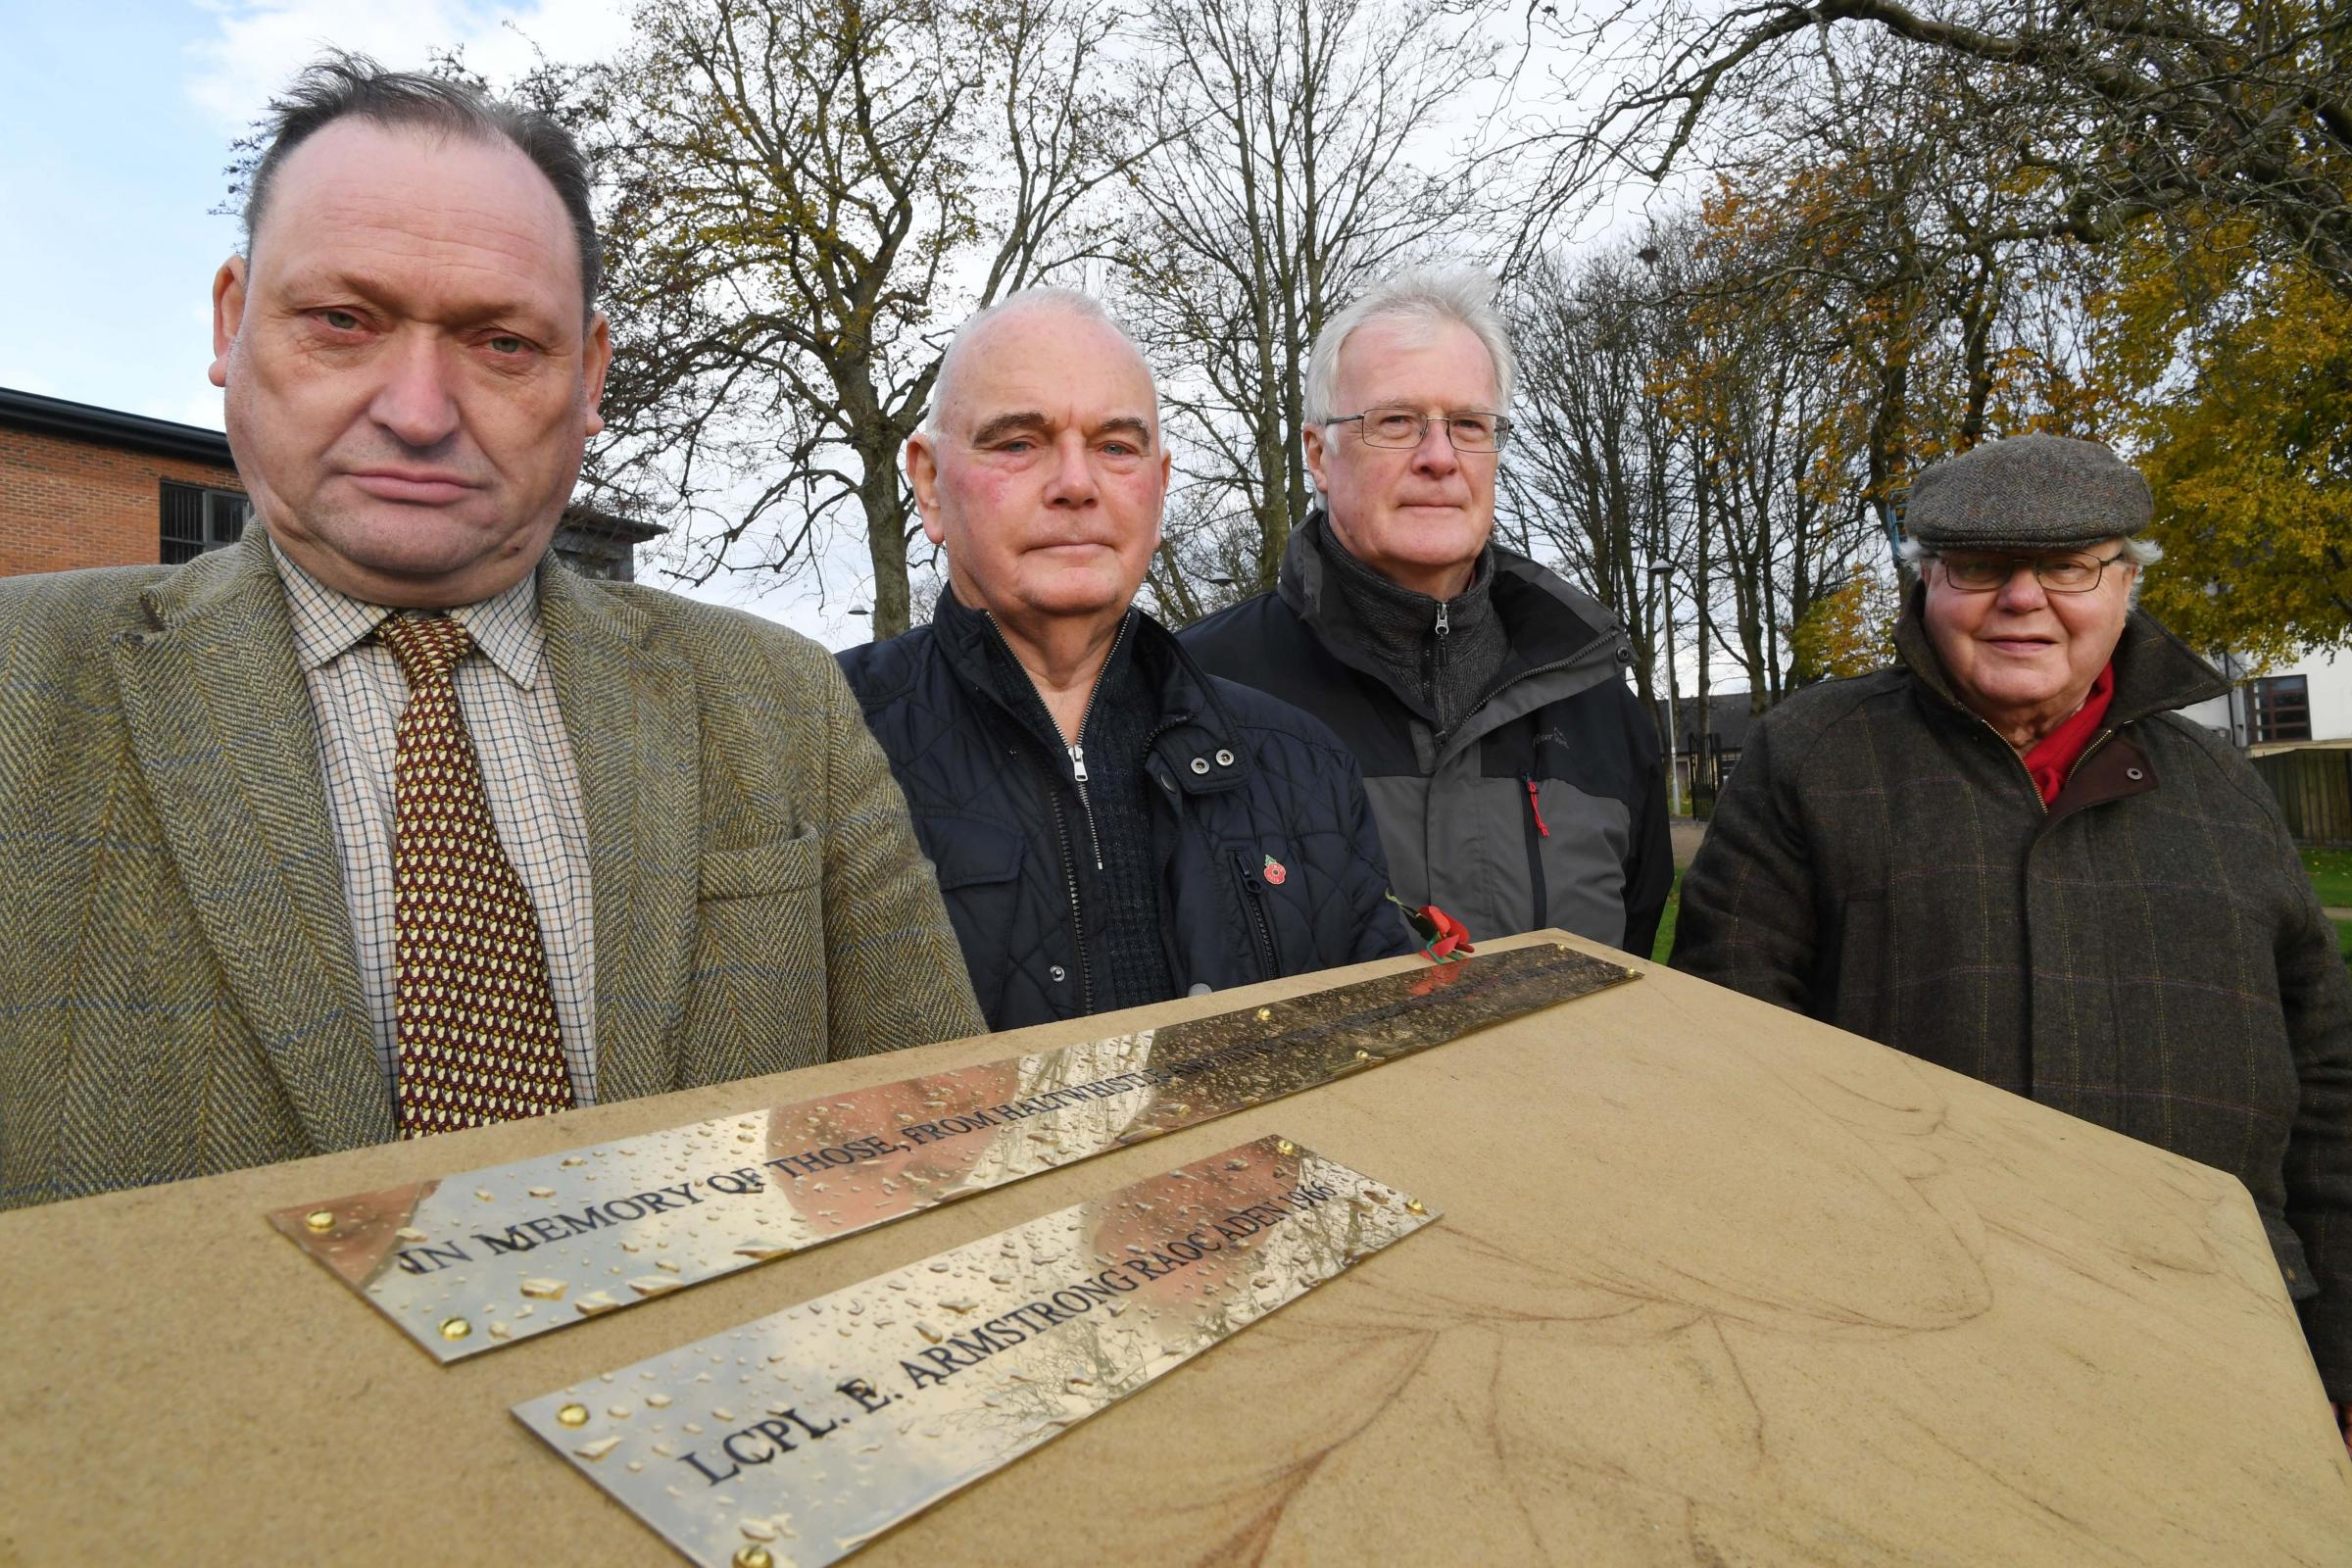 Town councillors Alan Sharp, Michael Ridley, John Elliott and Graham Ridley next to the new memorial stone at a Haltwhistle war memorial. Photo: HX471886. KATE BUCKINGHAM.